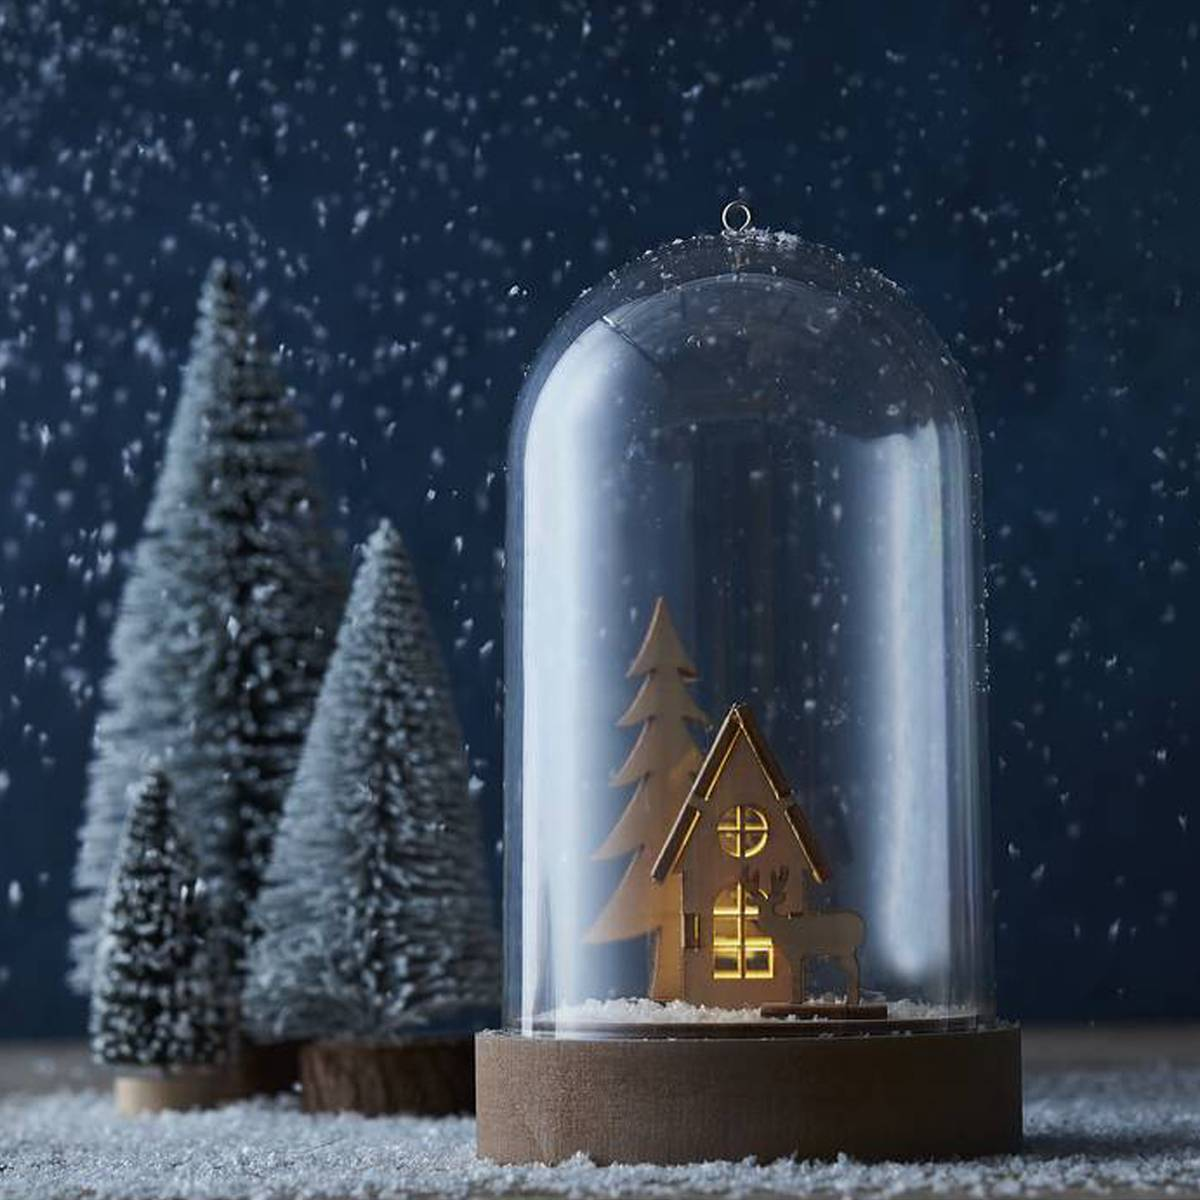 Create stunning centrepieces and festive decor with our LED Domes.  Fill them with a festive winter scene, with mini wooden houses, artificial snow, glitter and more!   Available in-store and online: https://t.co/0gwnbZpTsH  #CraftTogether #Christmas #Hobbycraft https://t.co/dQy0Ry5kfC